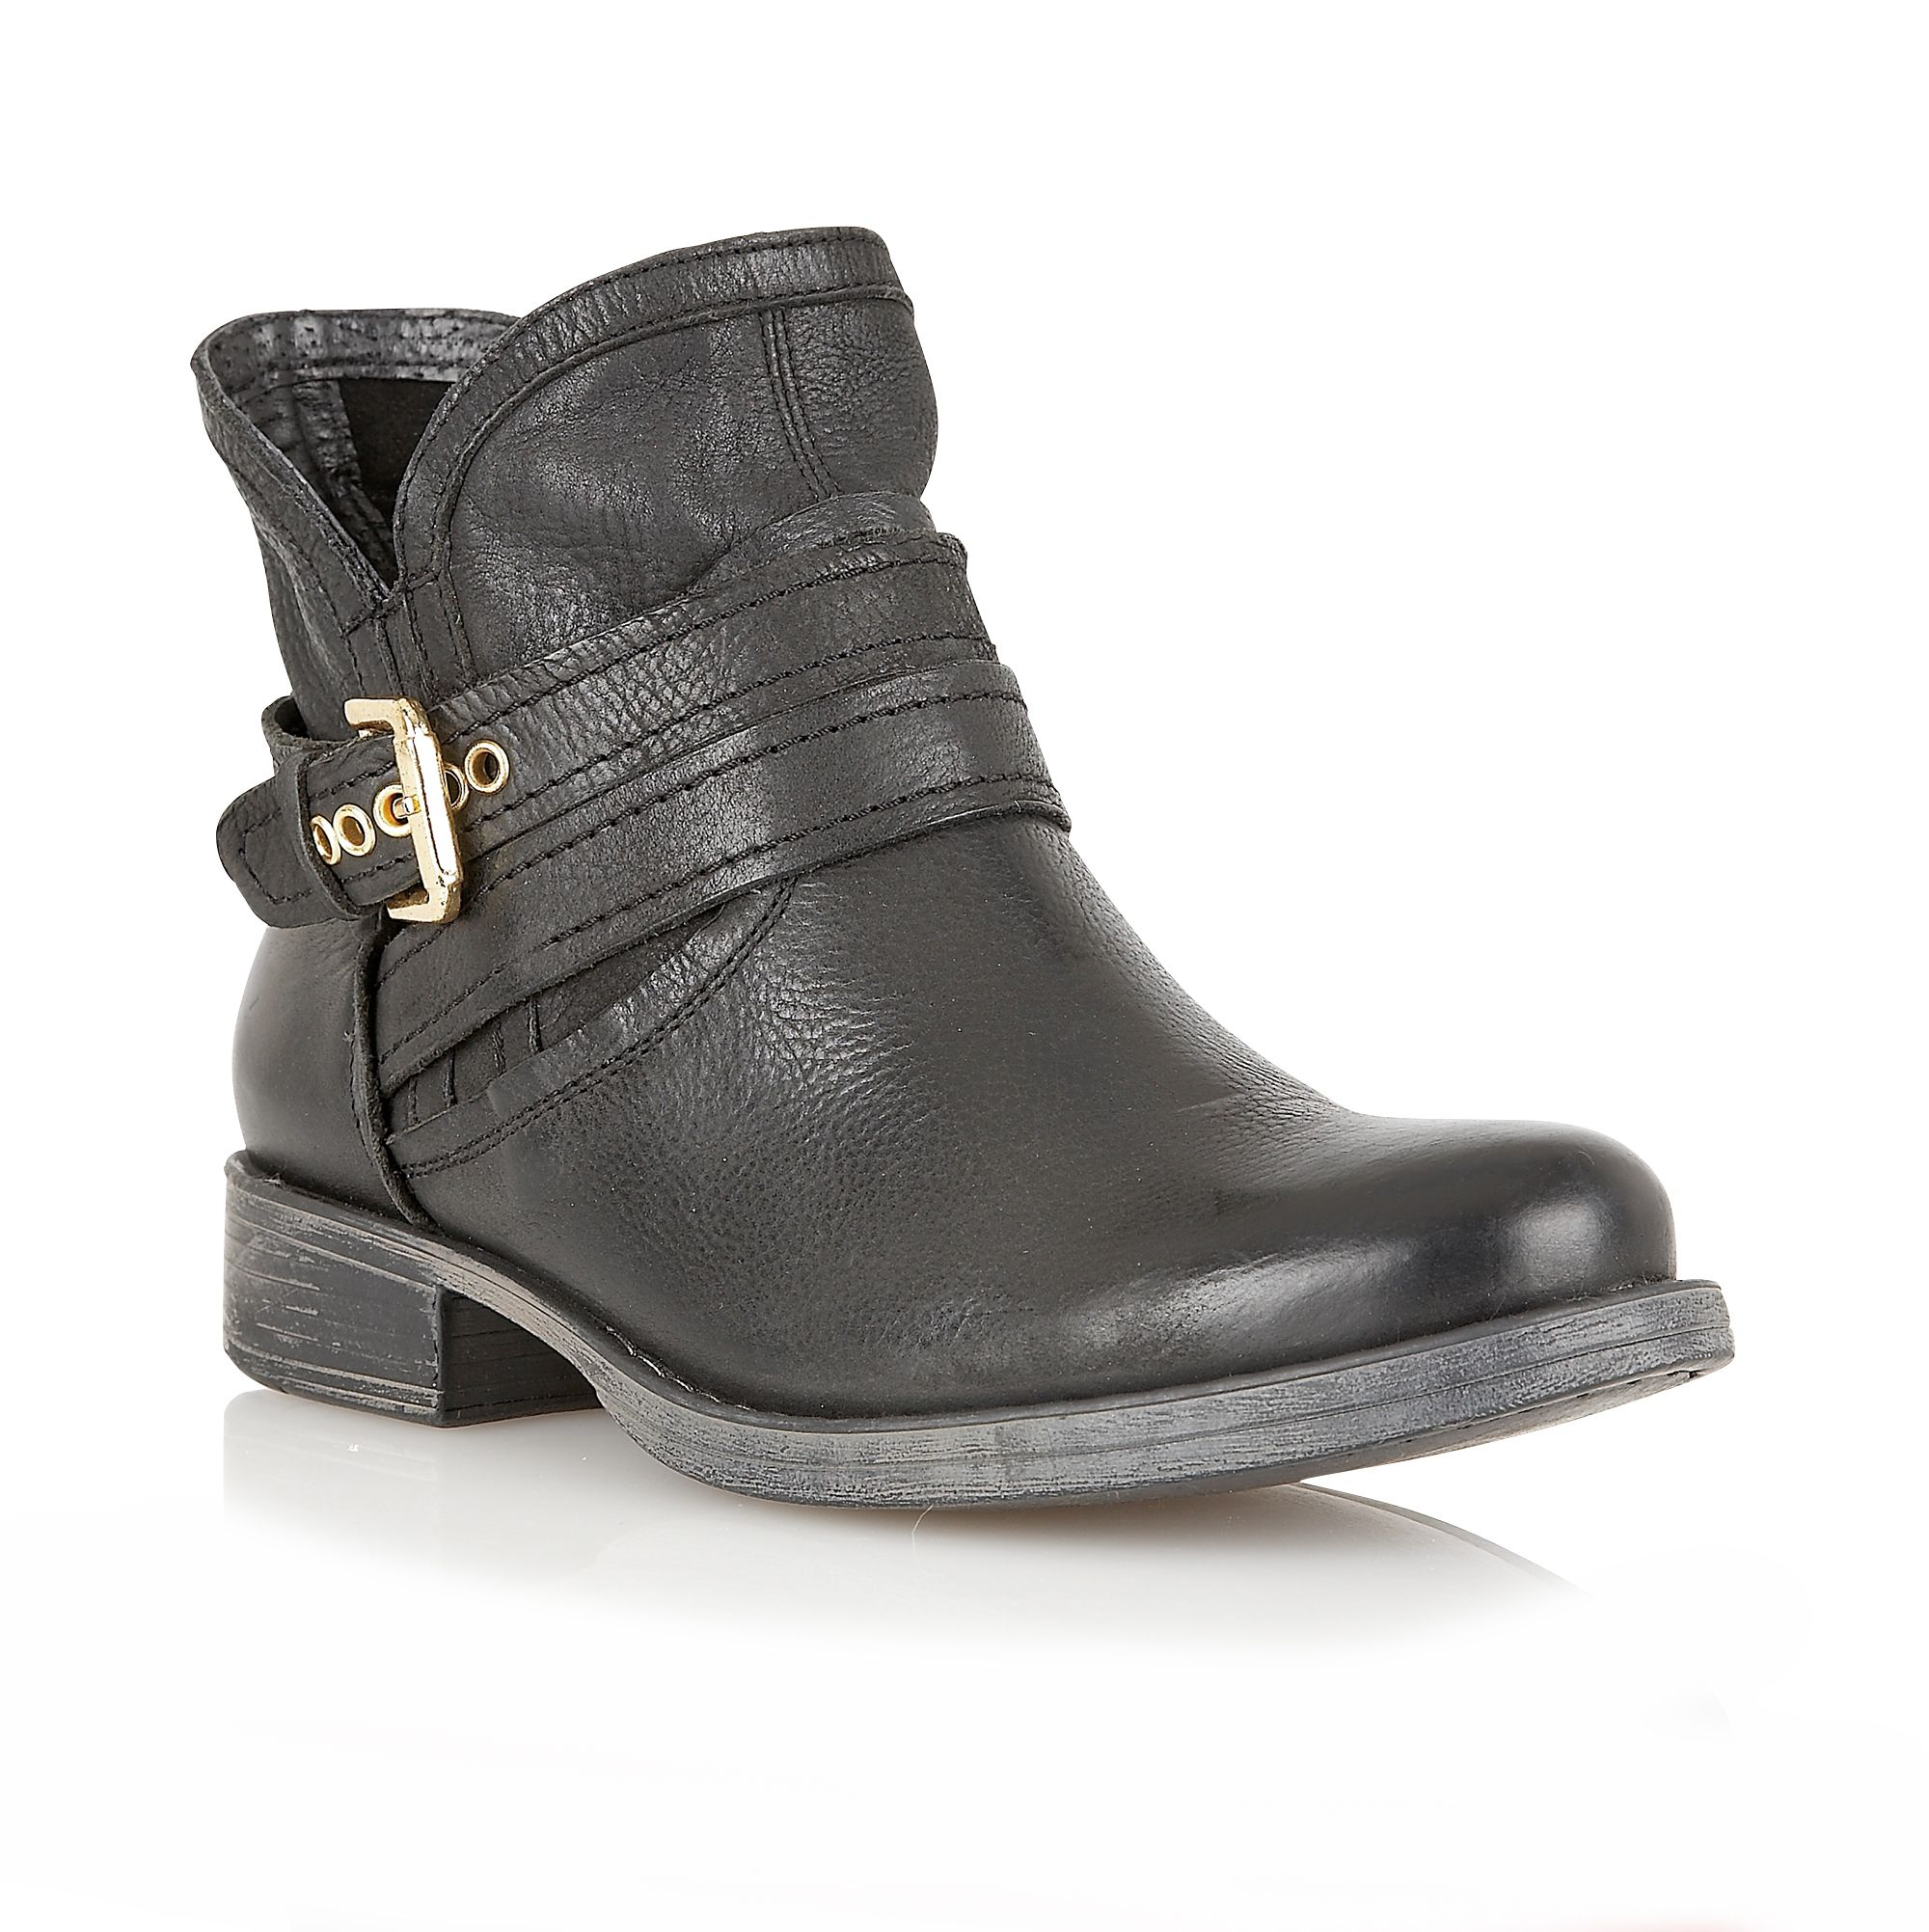 Anneka leather round toe buckle boots